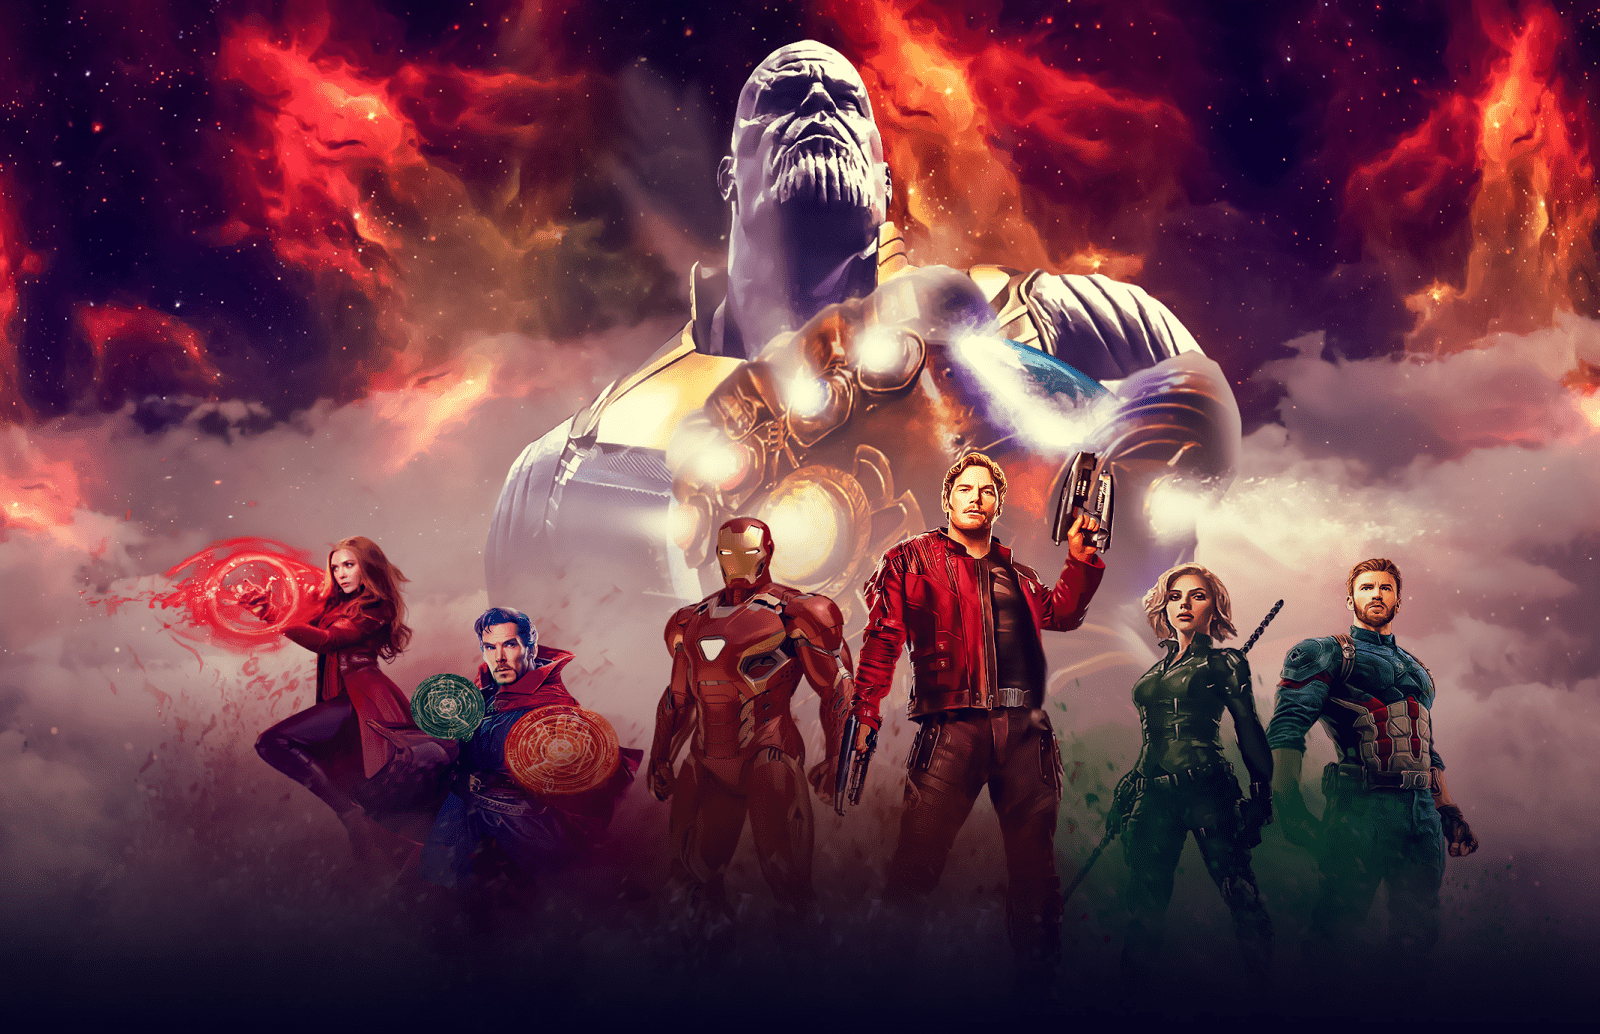 Avengers Infinity War HD Wallpapers 7wallpapersnet 1600x1034